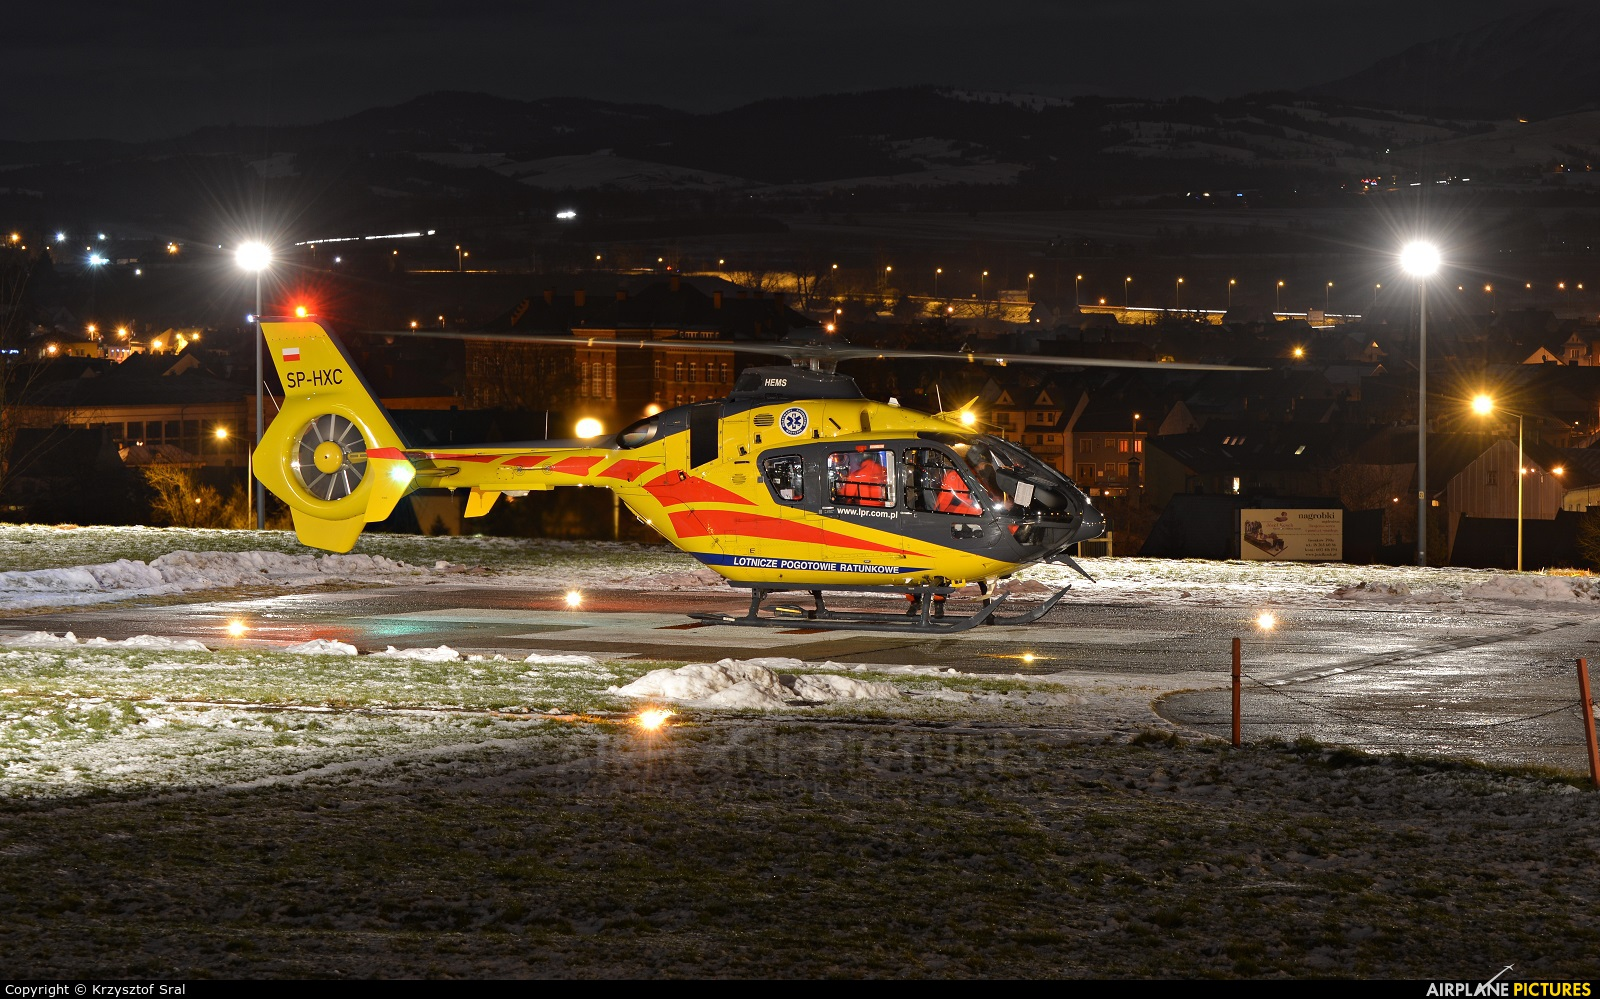 Polish Medical Air Rescue - Lotnicze Pogotowie Ratunkowe SP-HXC aircraft at Nowy Targ